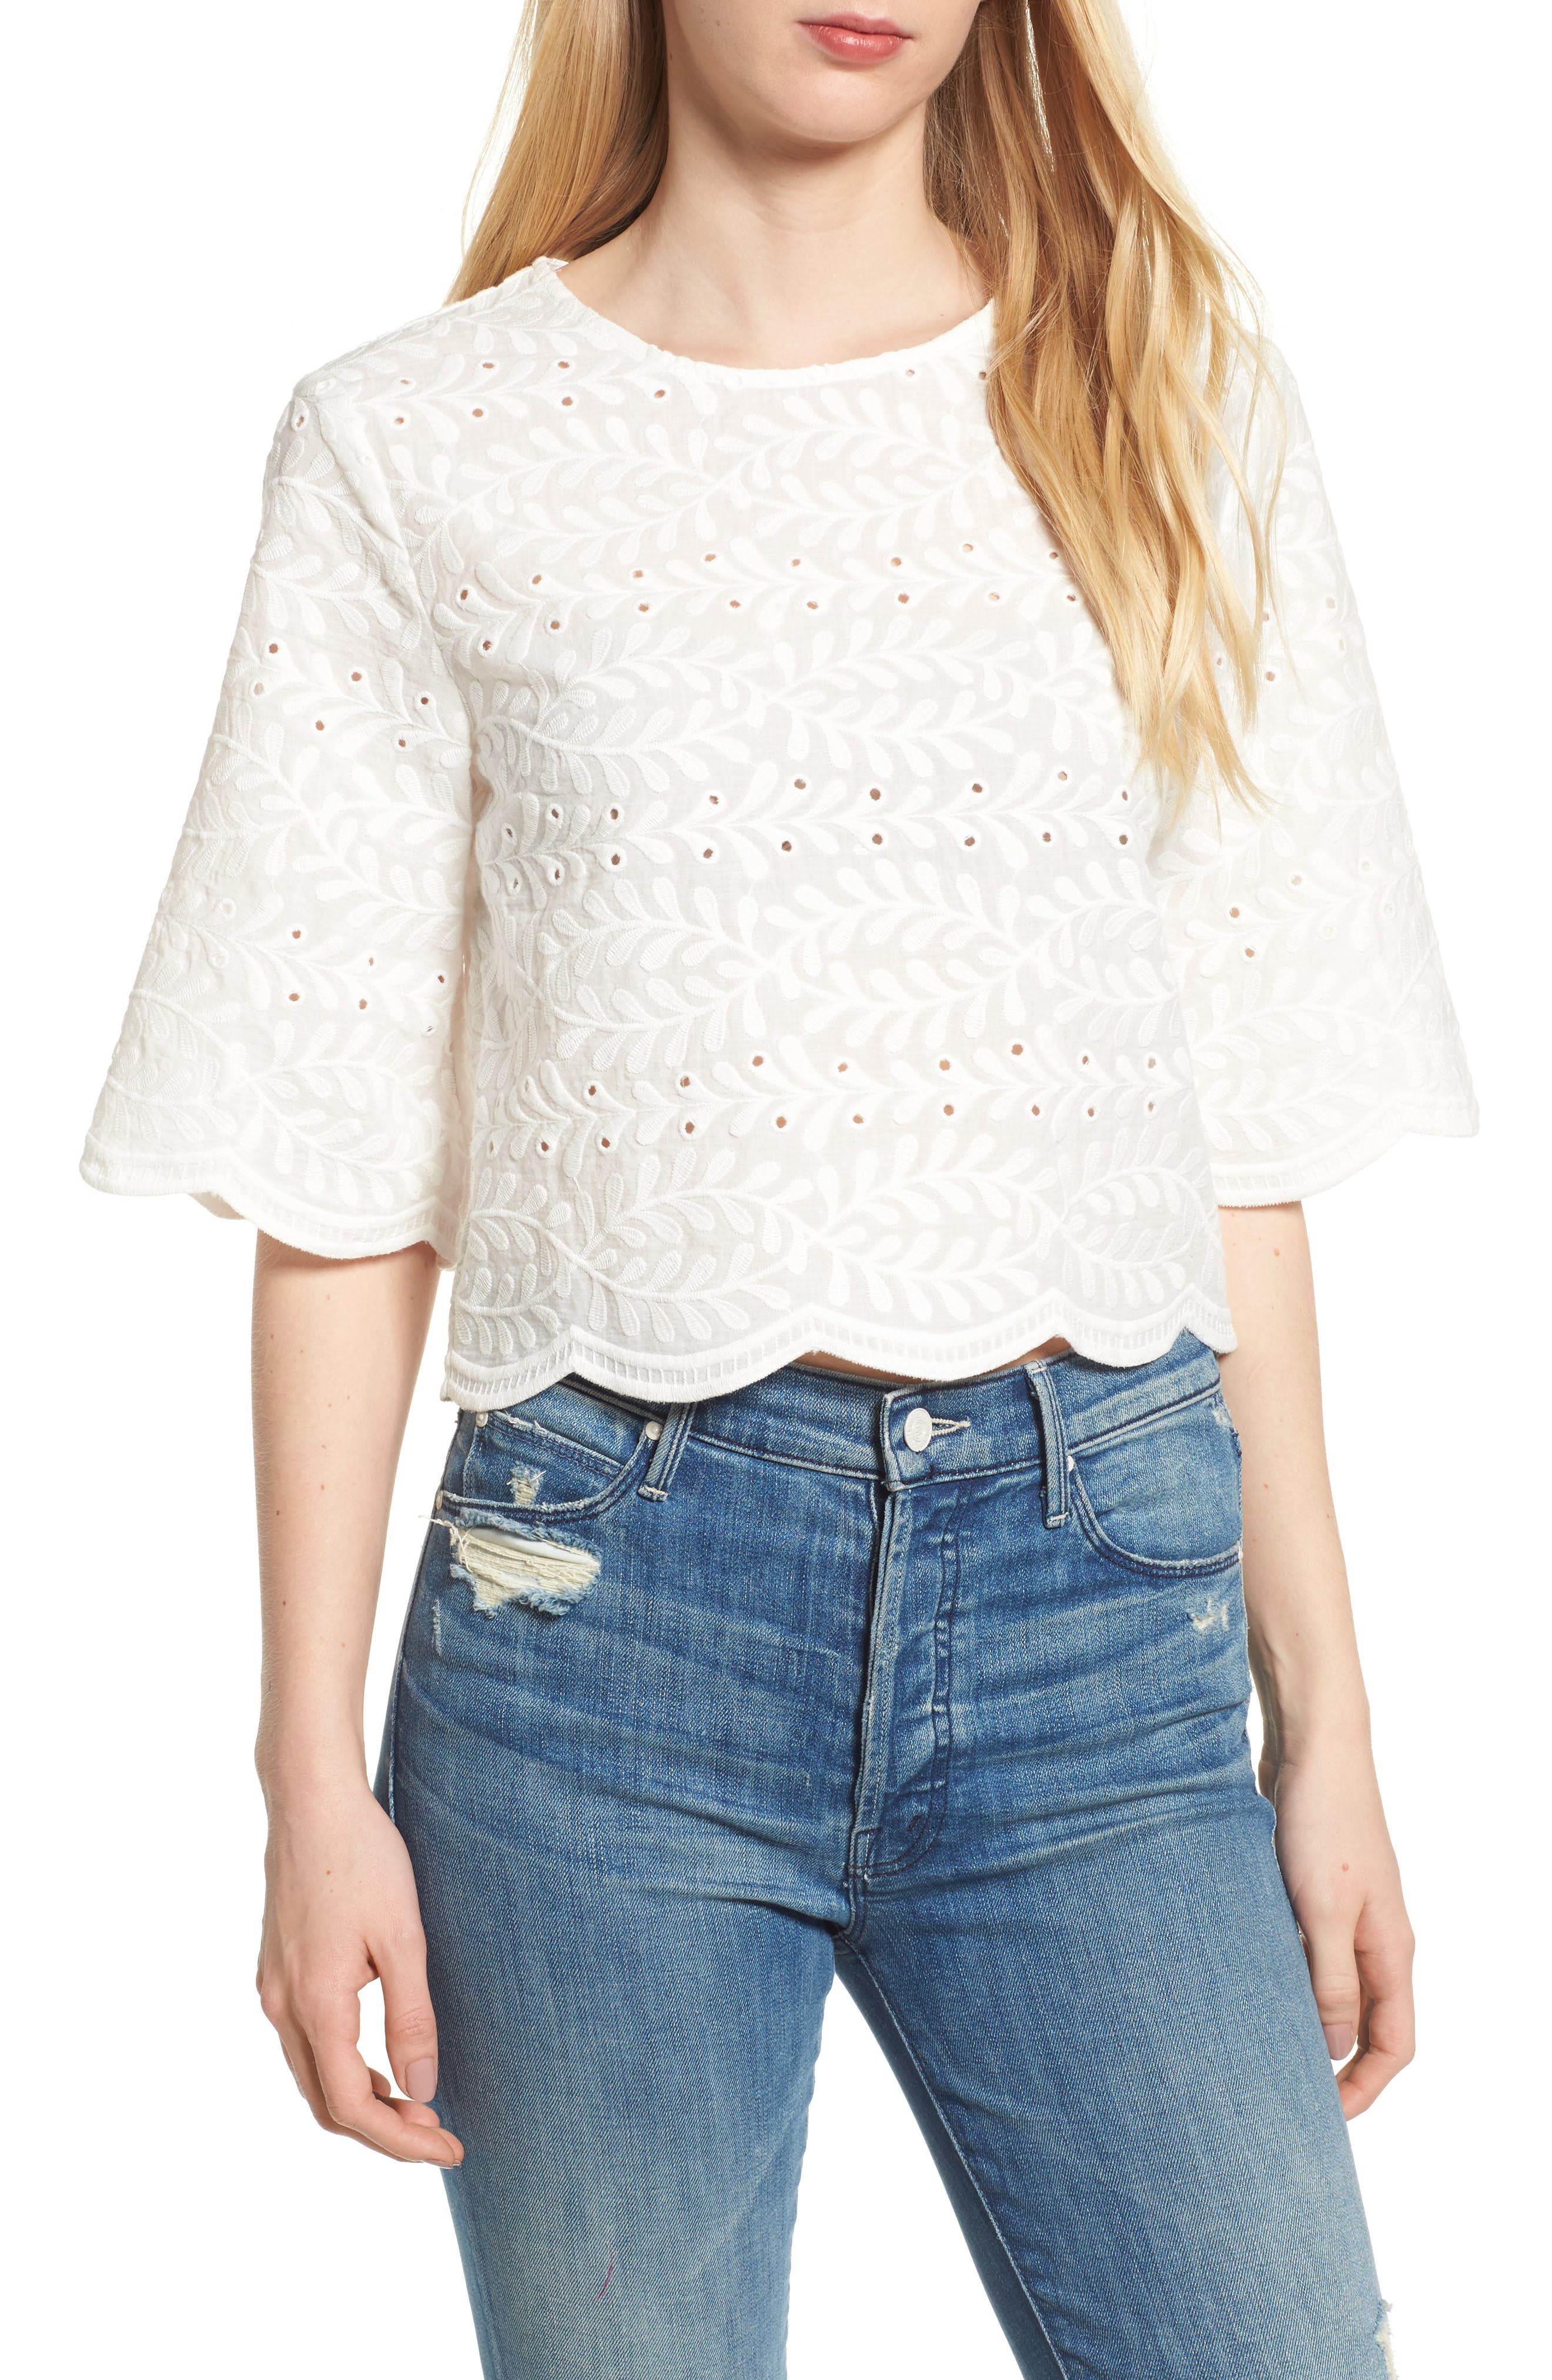 Bishop + Young Scallop Edge Blouse,                         Main,                         color, White